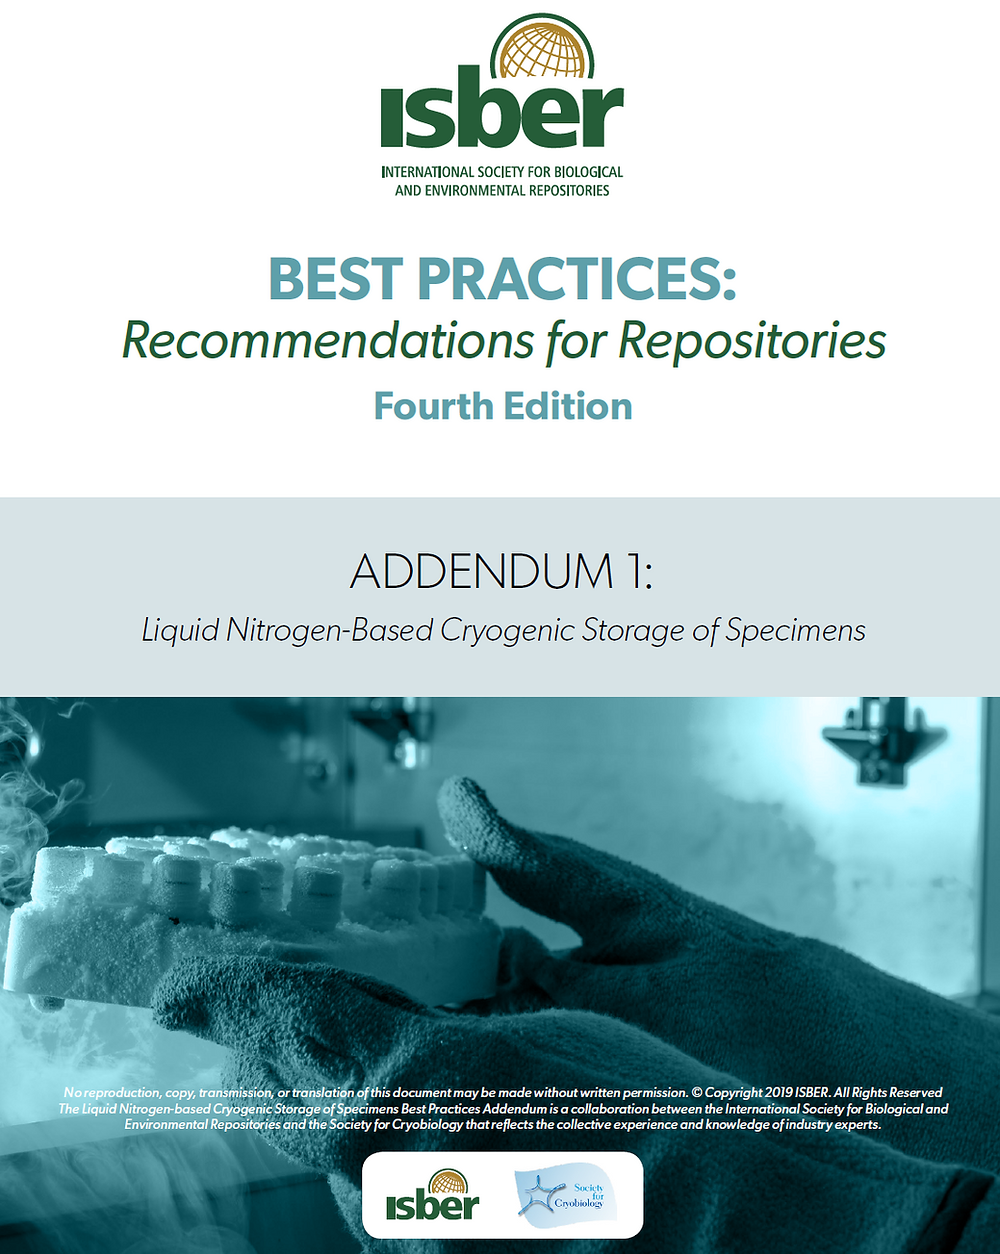 ISBER Best Practices: Recommendations for Repositories